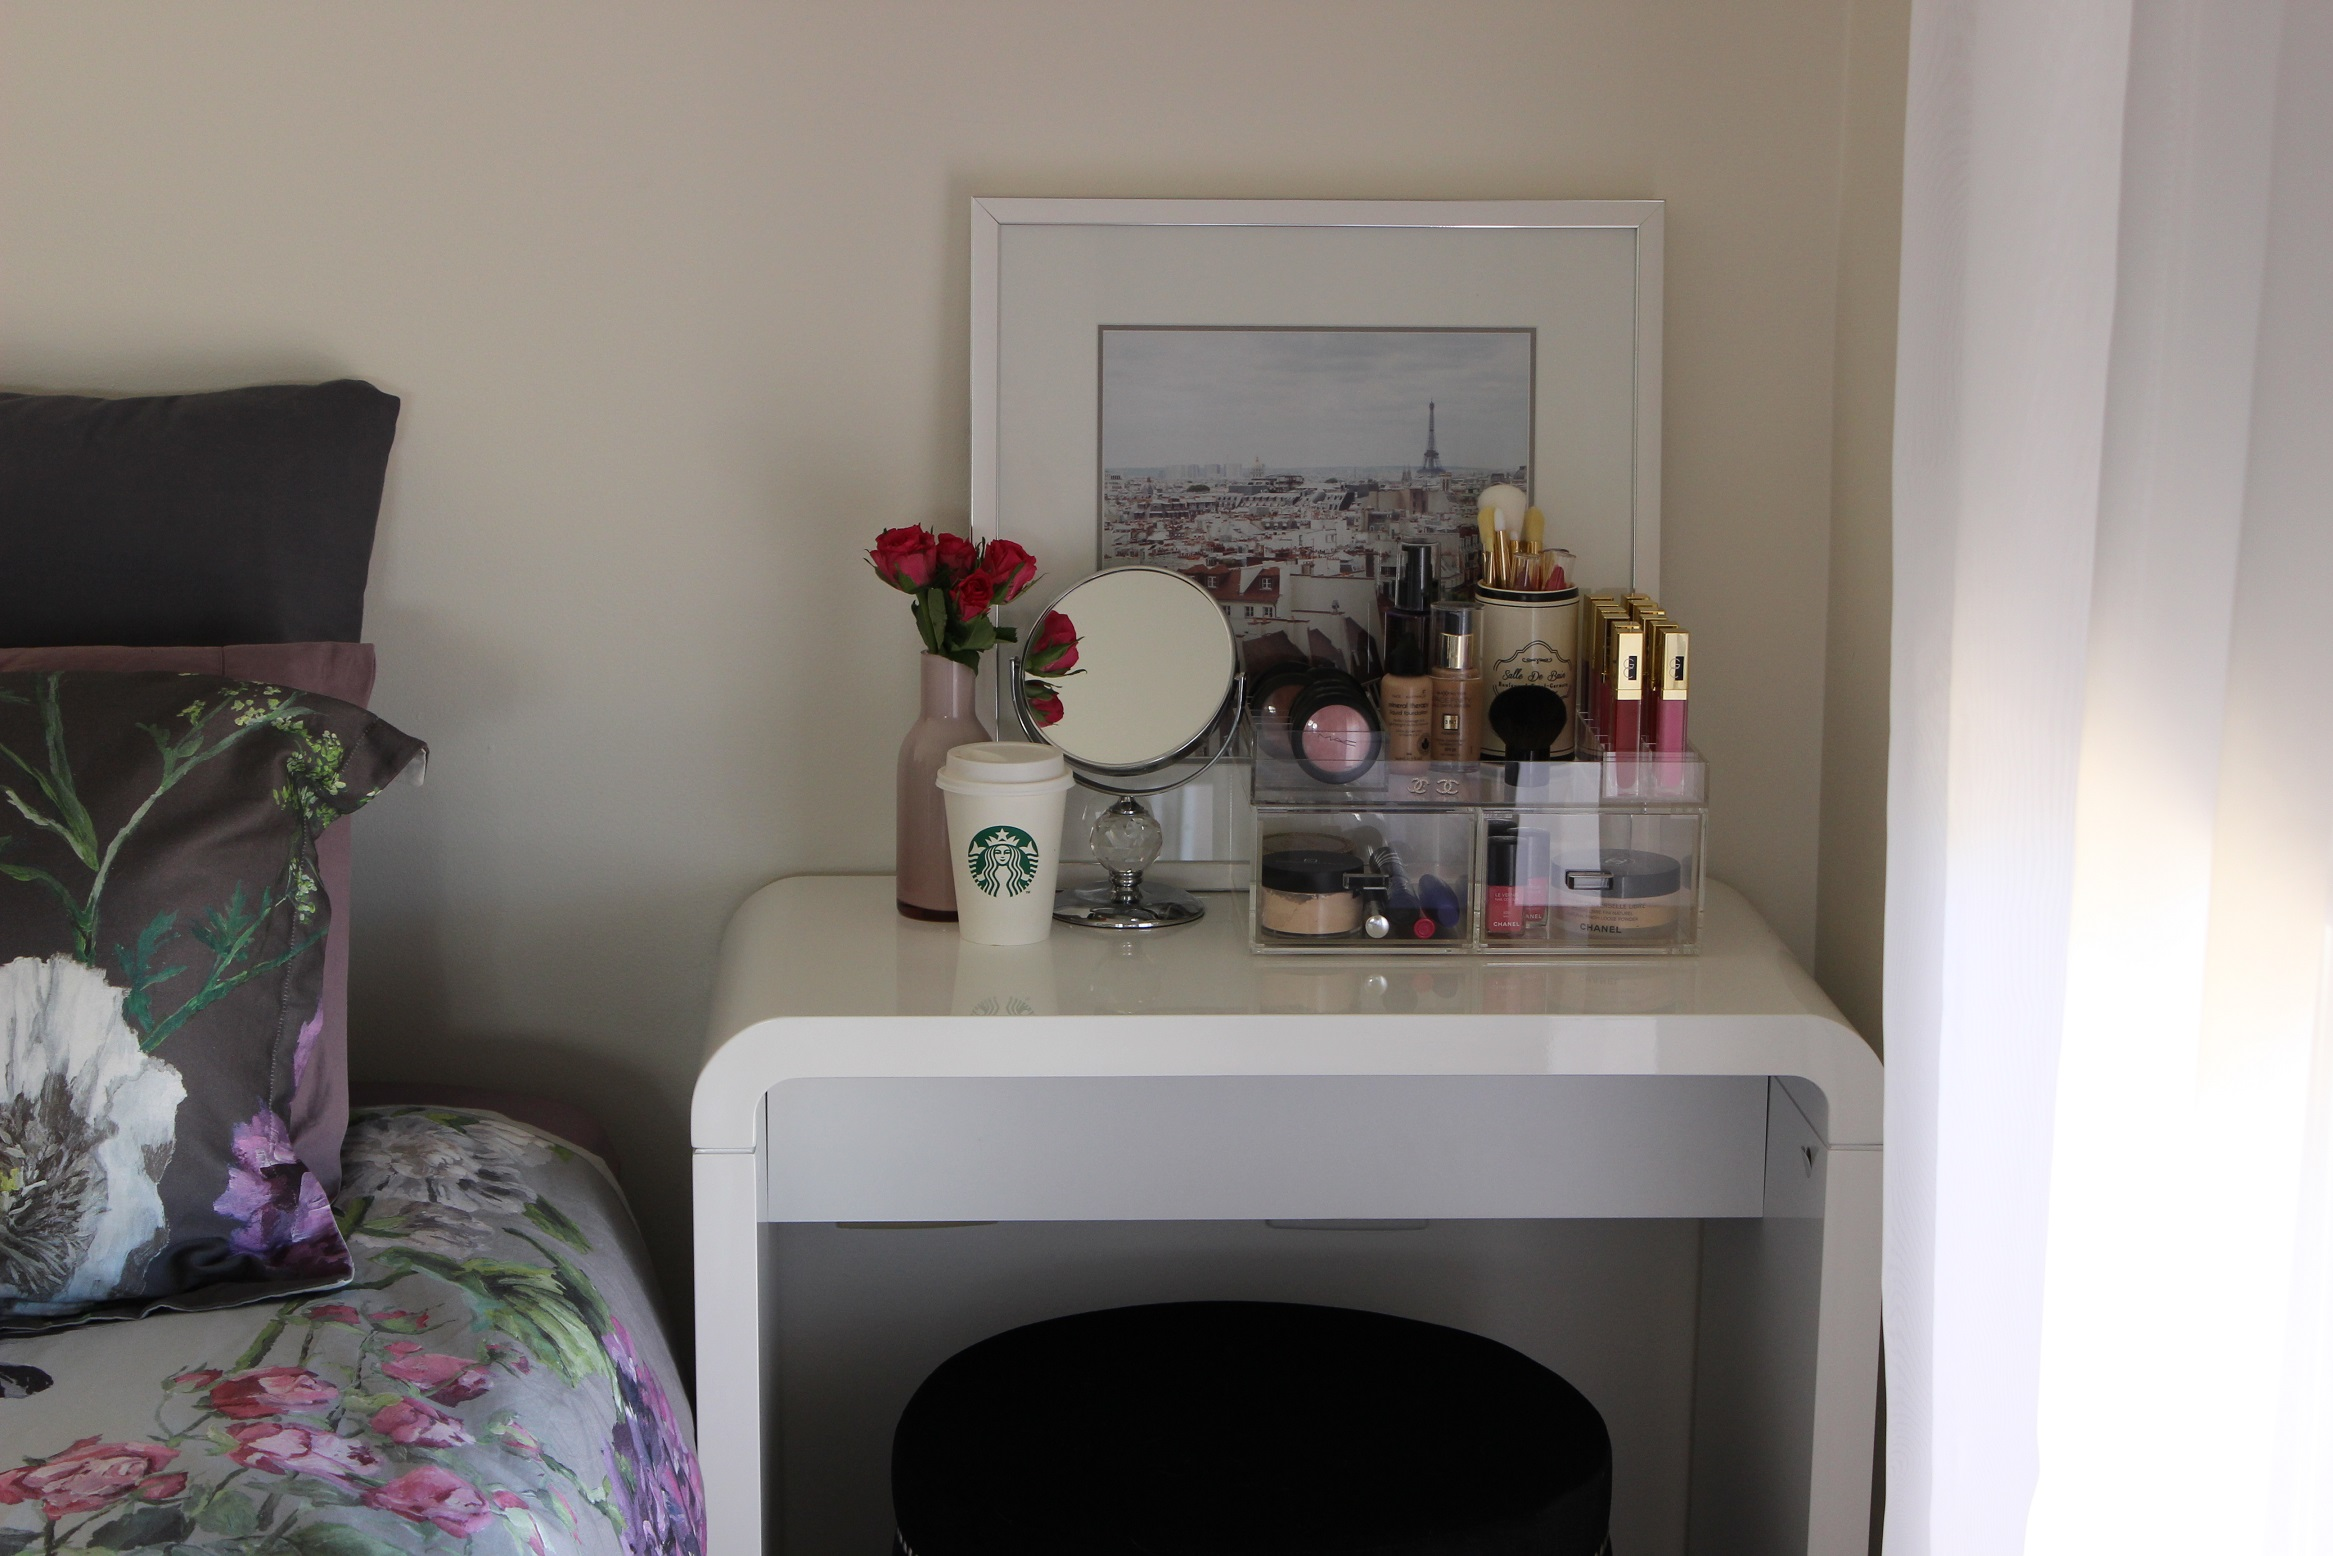 Diy Vanity Area Makeup Vanity For Small Spaces The Makeup Box Shop